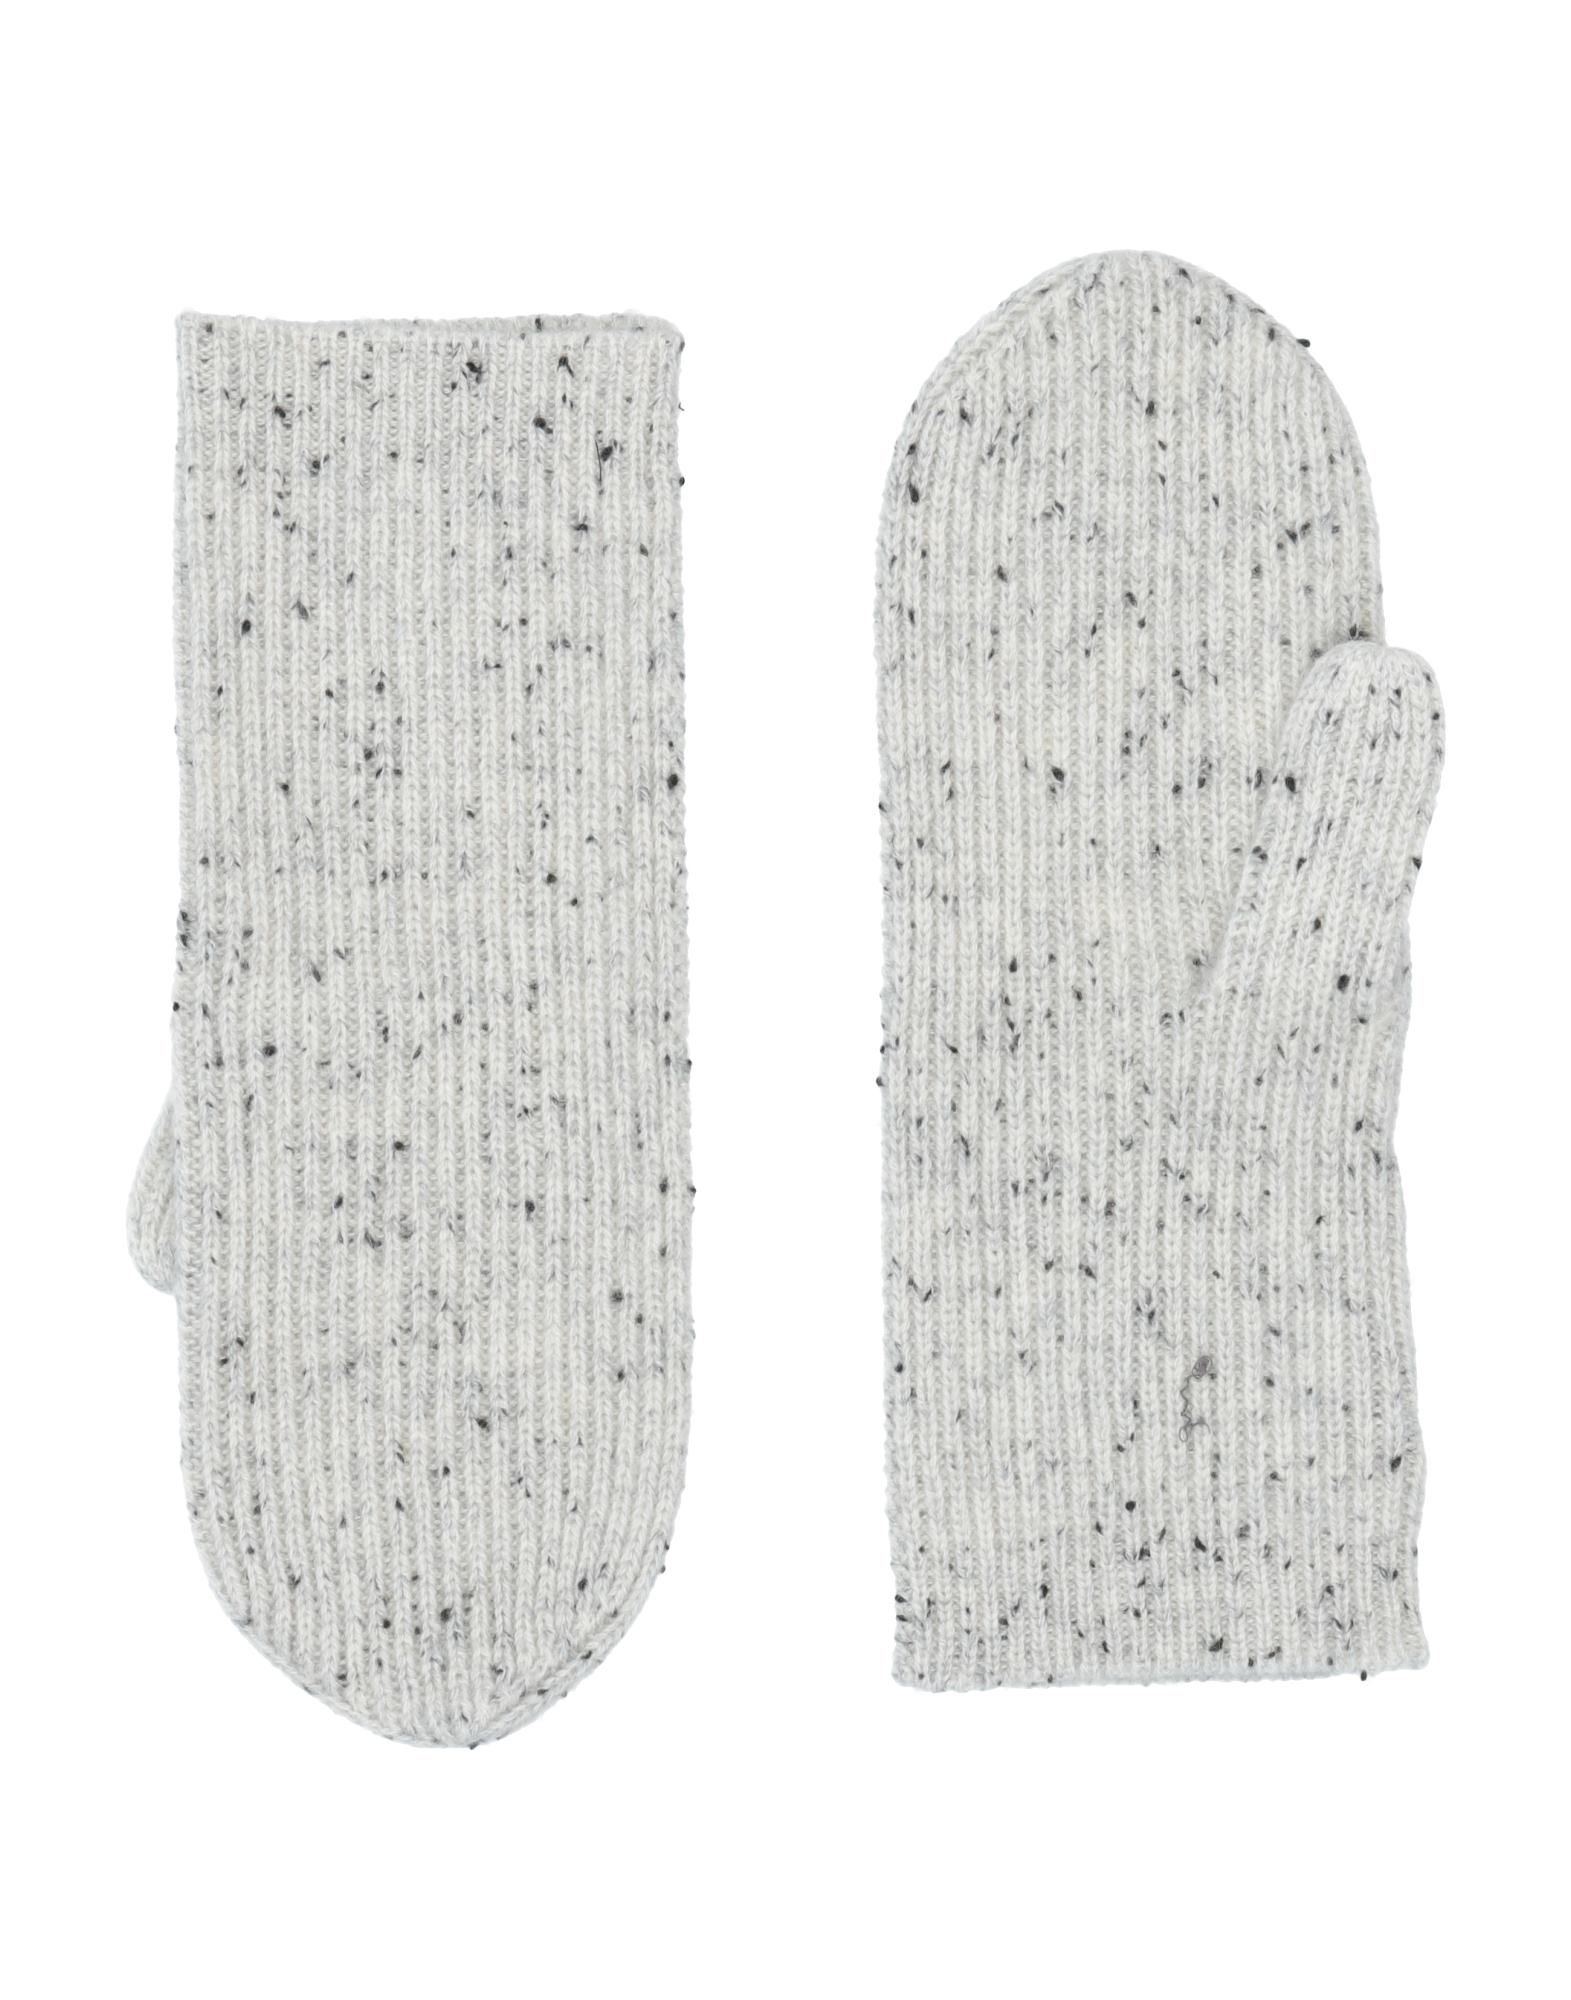 ISABEL MARANT Gloves. knitted, no appliqués, mélange, multicolor pattern. 100% Cashmere